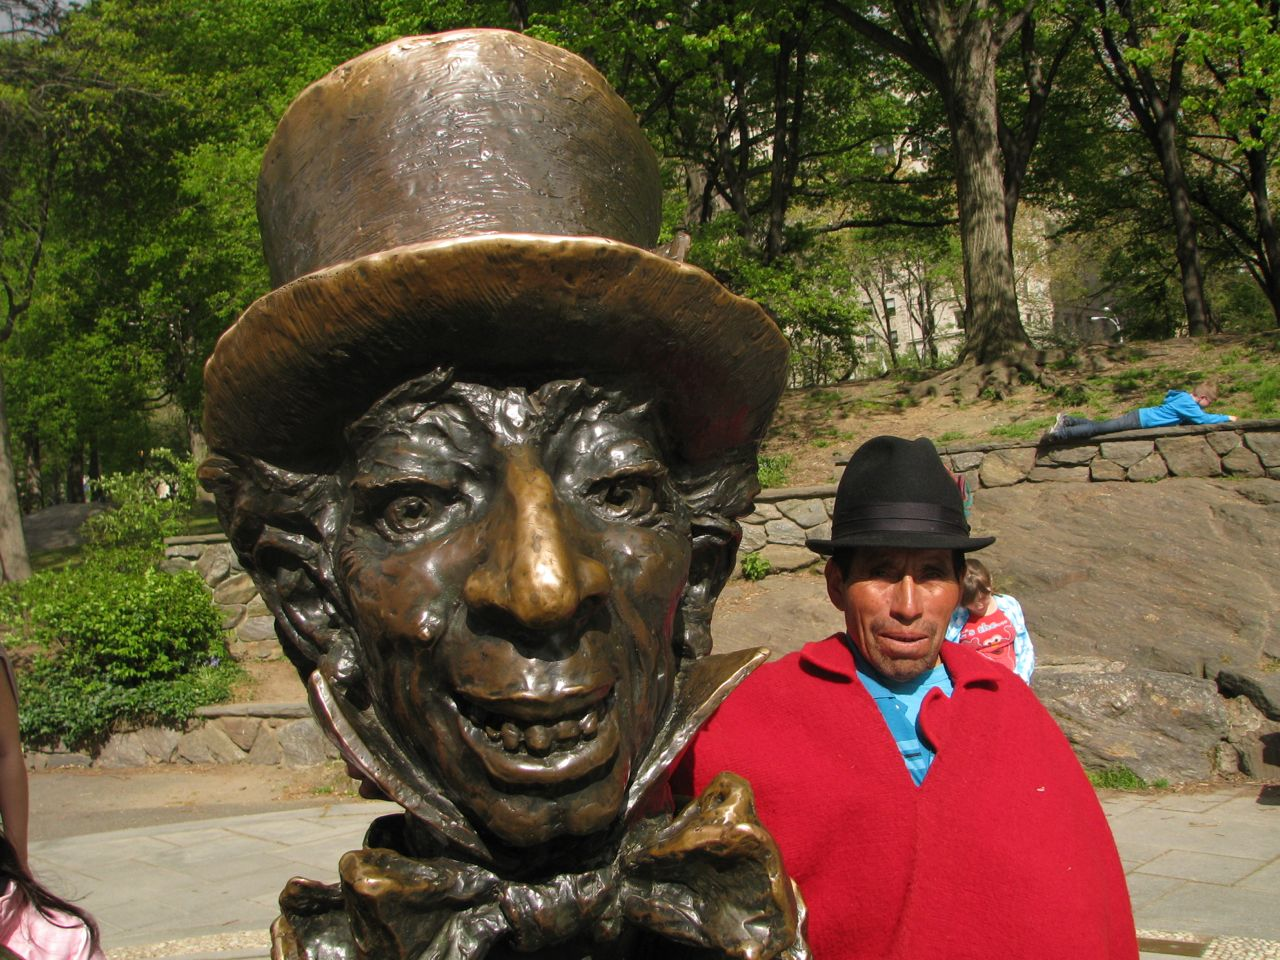 Baltazar with the Mad Hatter in Central Park